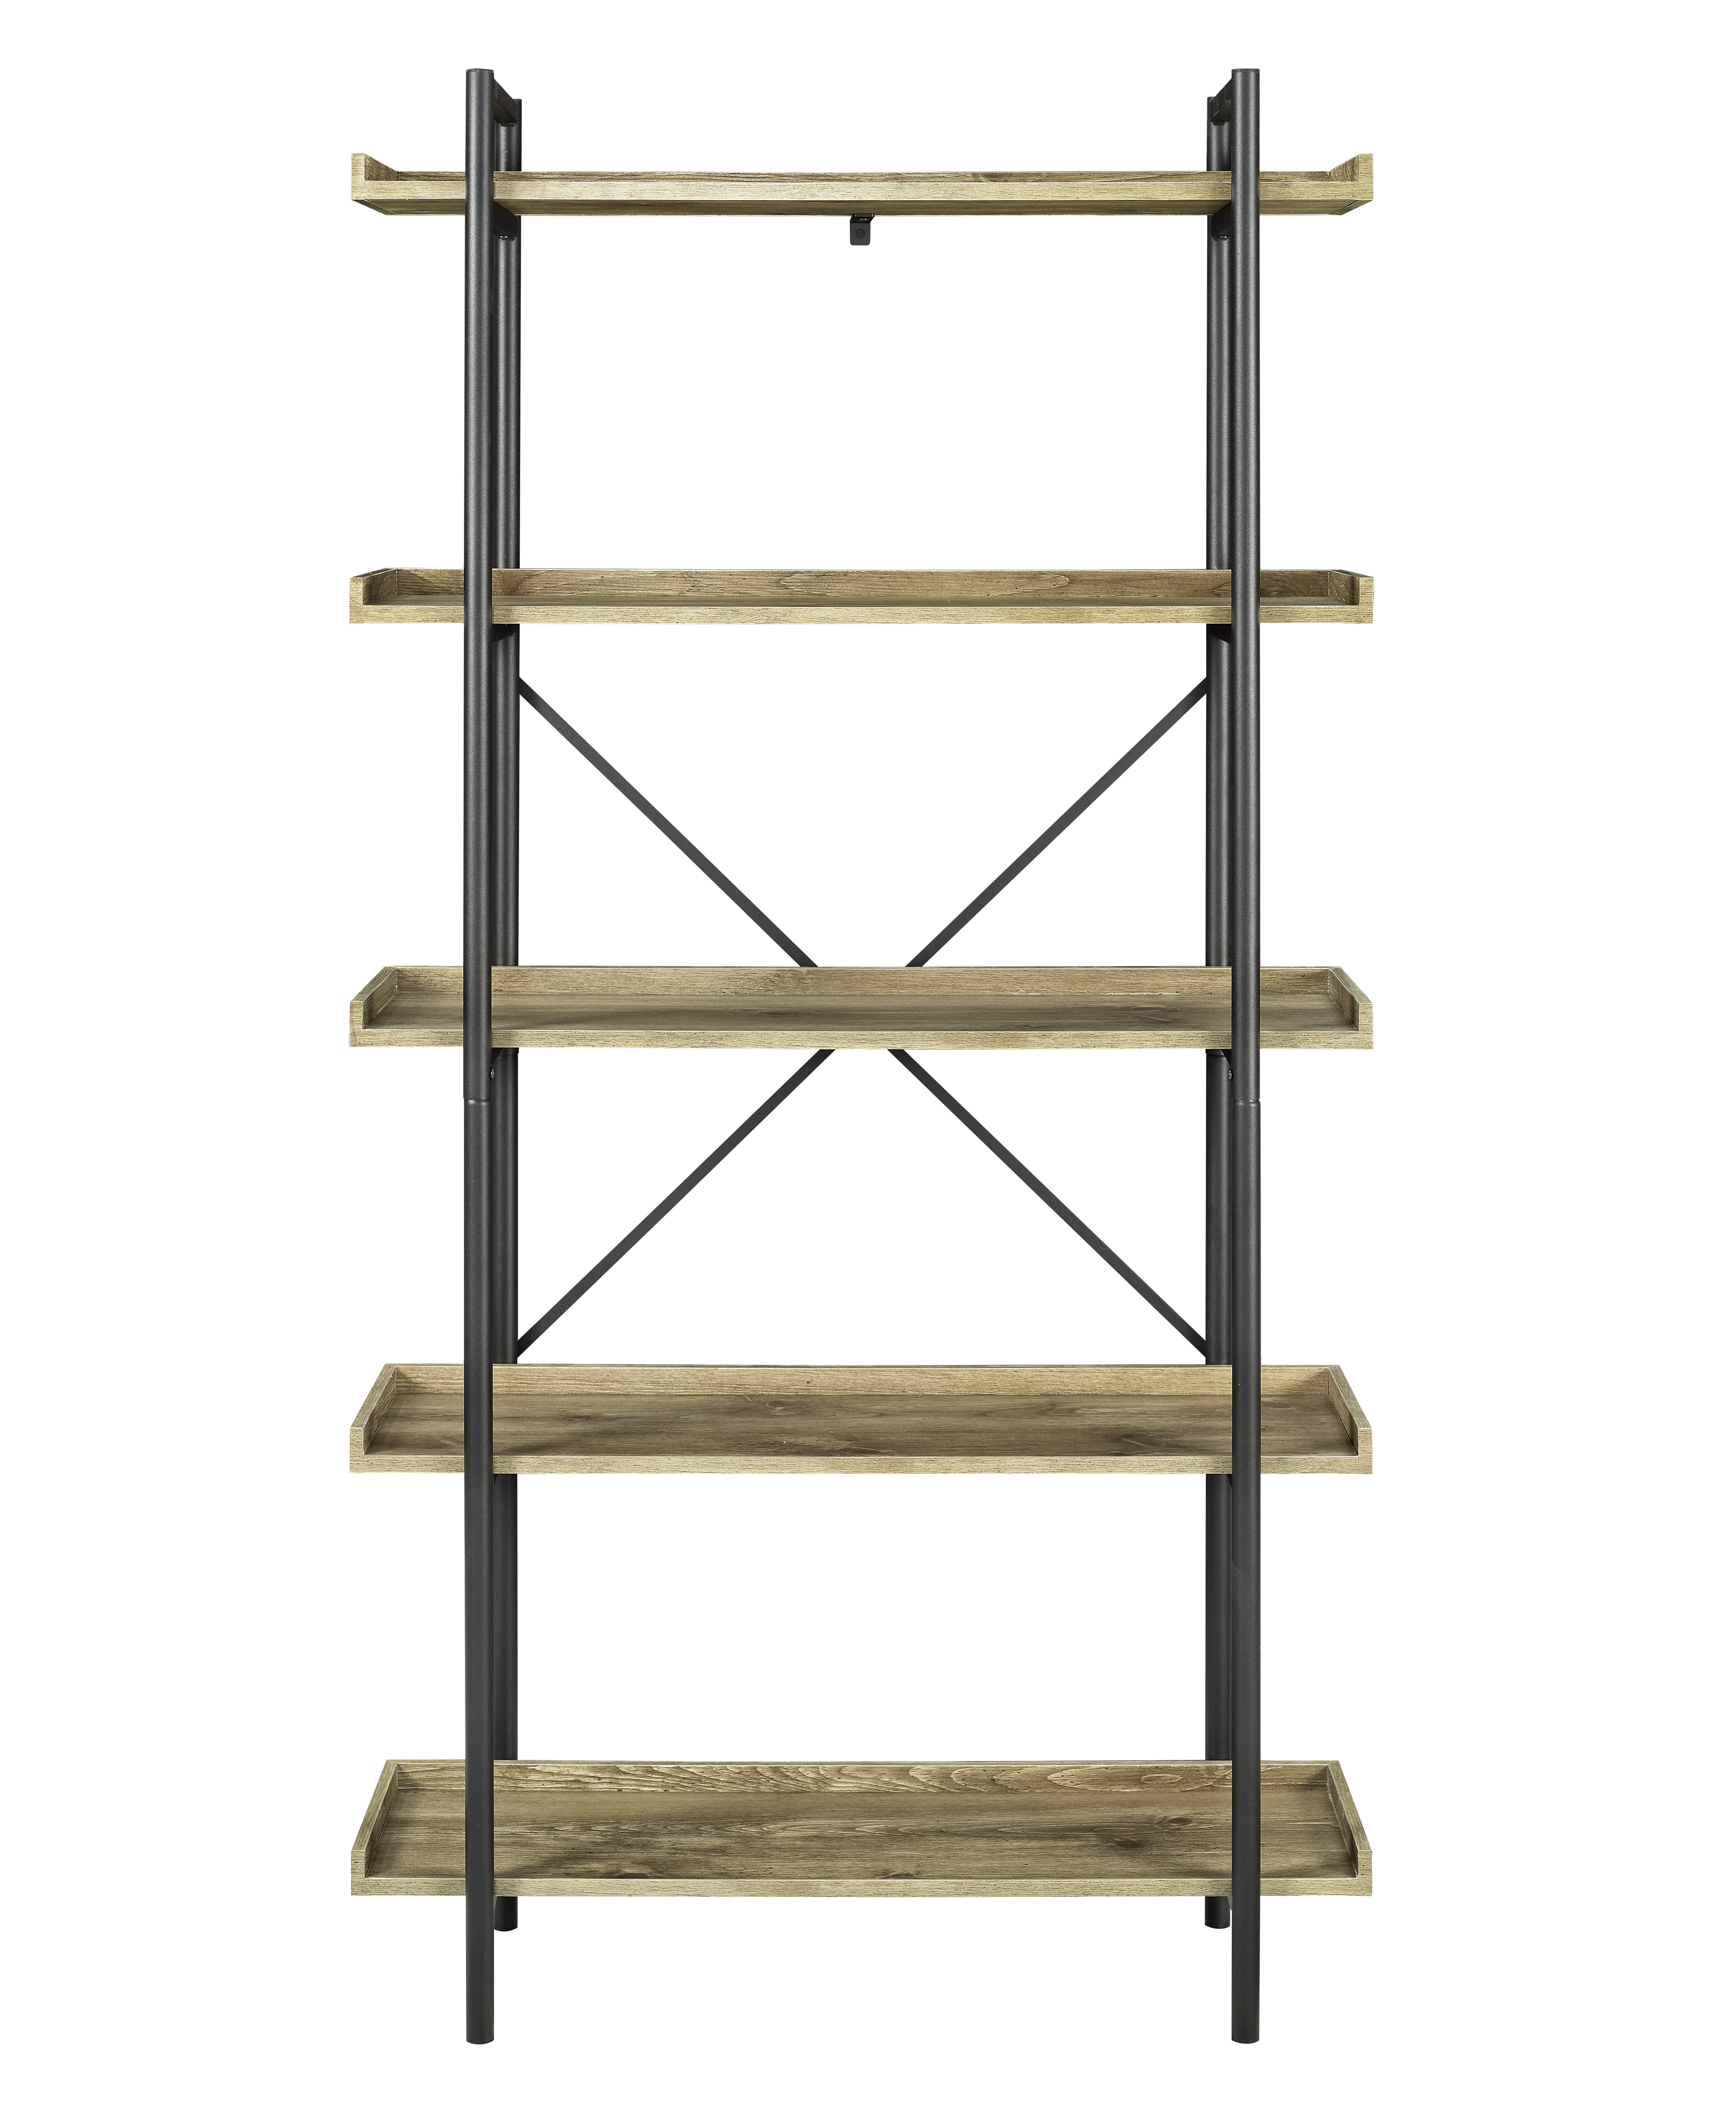 Most Recent Swindell Etagere Bookcases Pertaining To Williston Forge Swindell Etagere Bookcase (View 2 of 20)